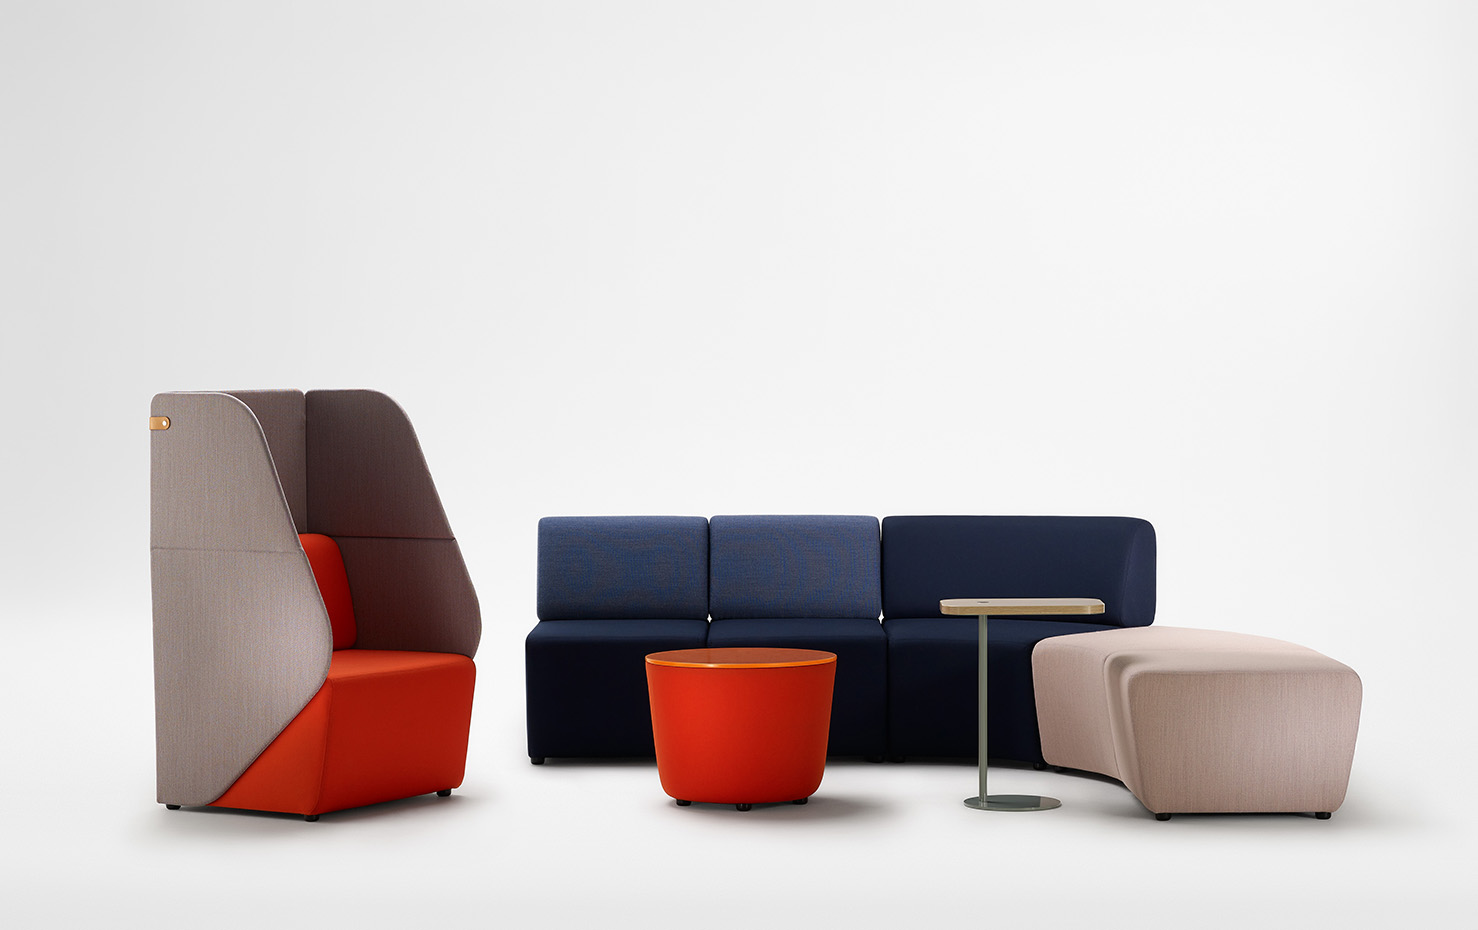 SOL-Mix by Zenith Interiors